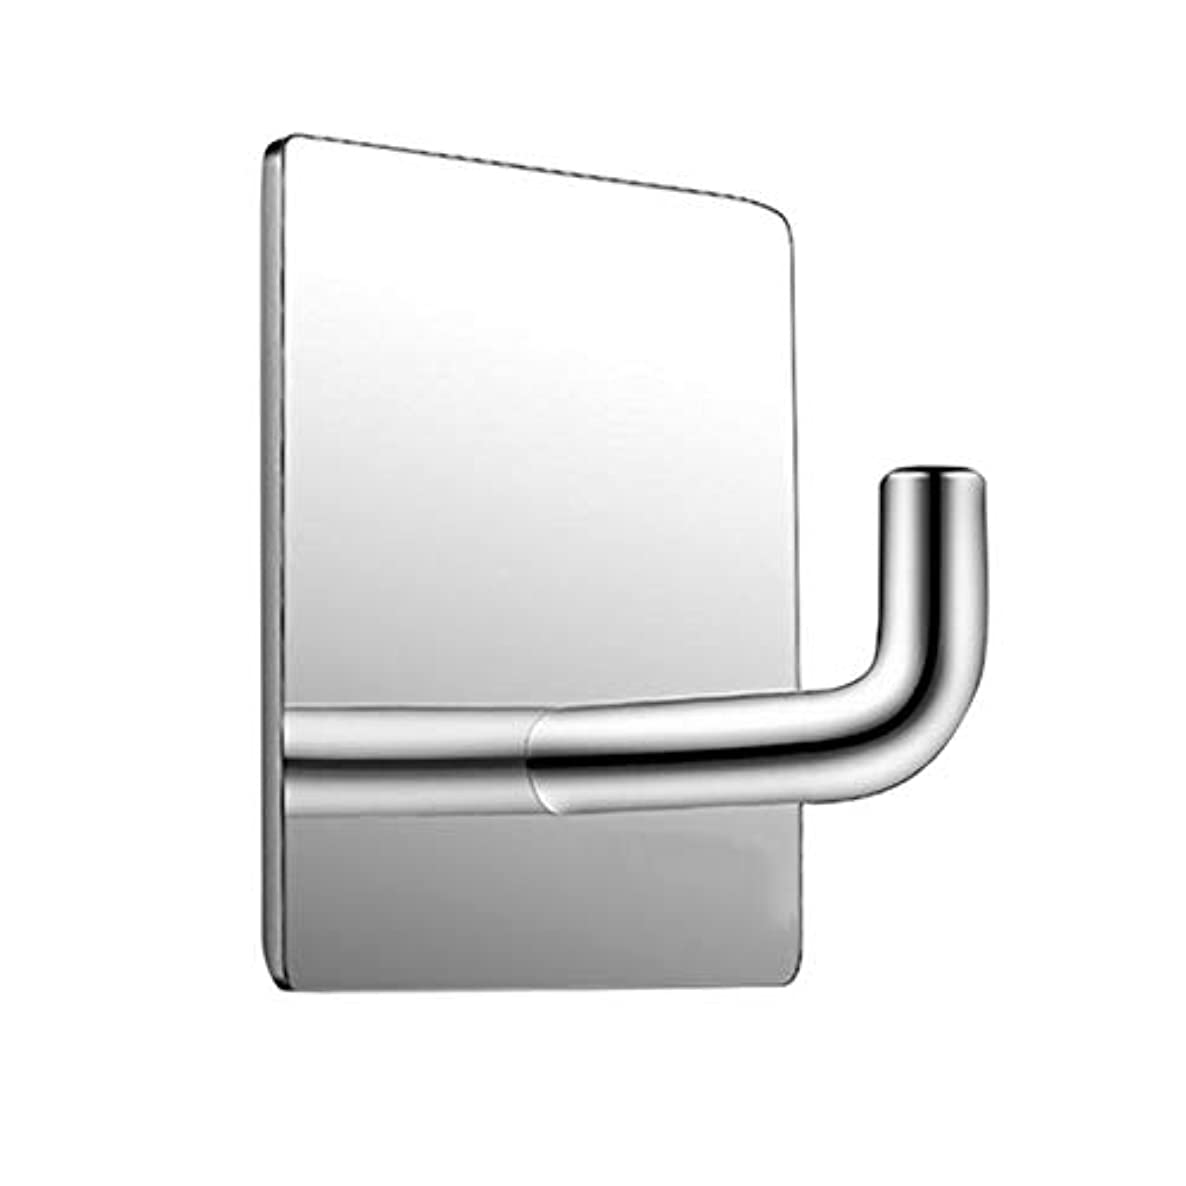 Hook Kitchen - 1 Pc Wall Hook Rectangle Mirror Polish Stainless Steel Hanger Adhesive Hanging - Wall Wall Mirror Metal Hook Decor Stick Pvc Hook Mirror Vinyl Tile RackMirror Hook Mi